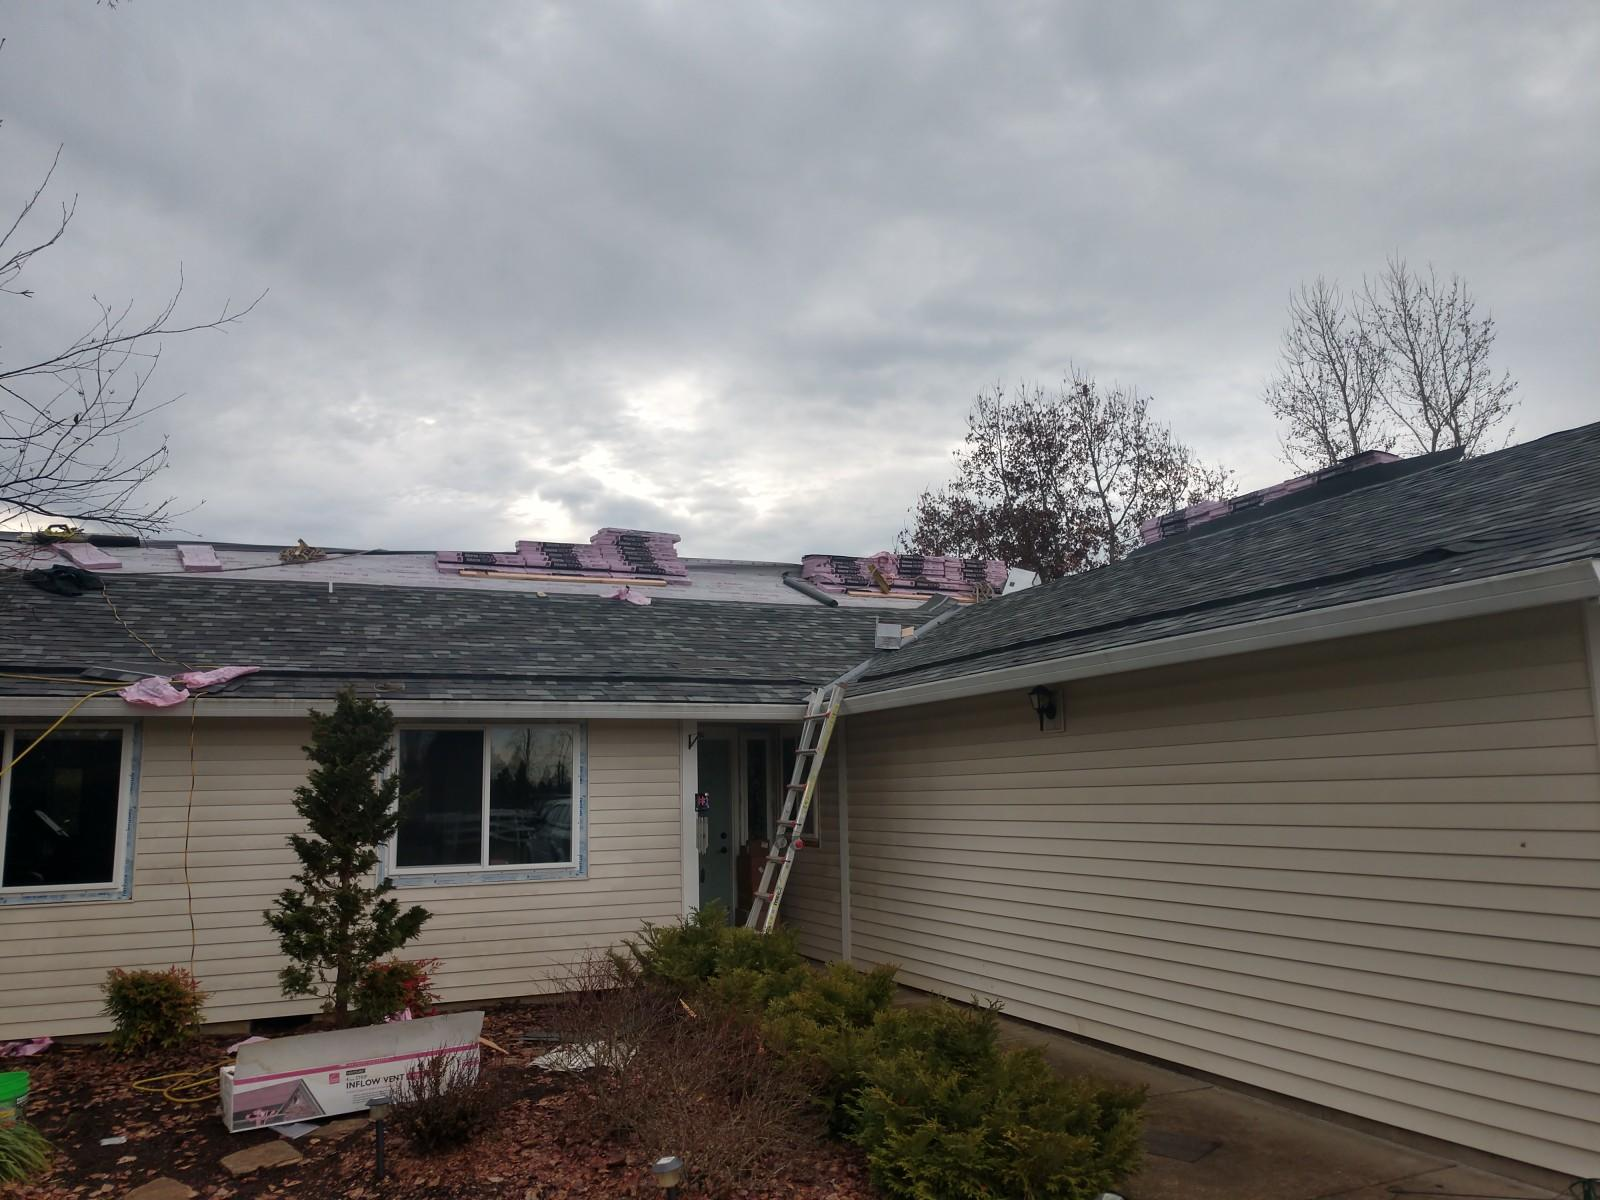 Inflow Vents Installed for the Roof